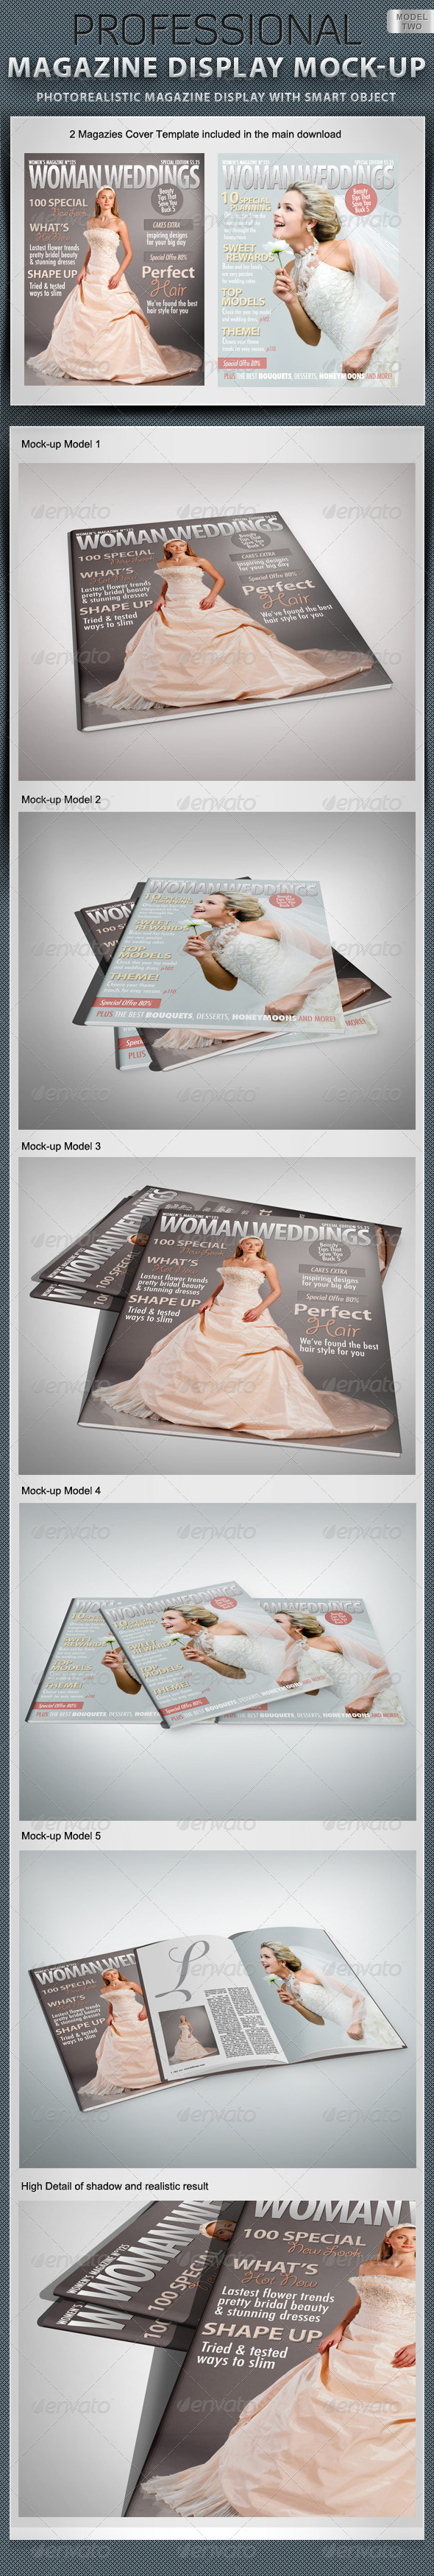 GraphicRiver Professional Magazine Display Mock-up V2 1521254